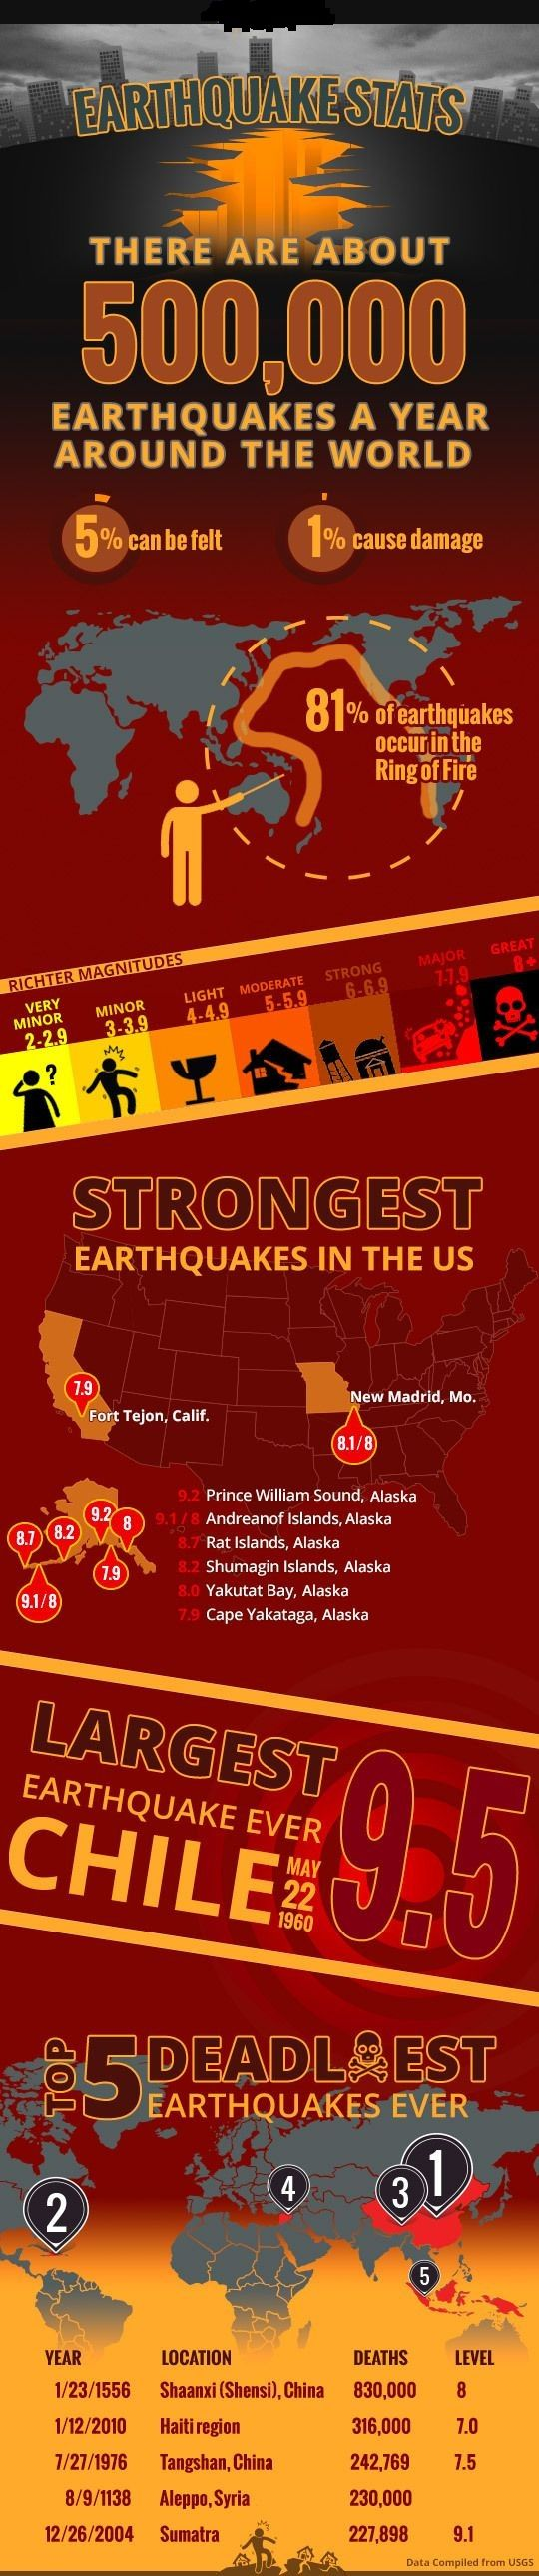 """What is an Earthquake""?""How do Earthquakes happen""? School going kids, after reading this guide, would understand causes of Earthquakes."